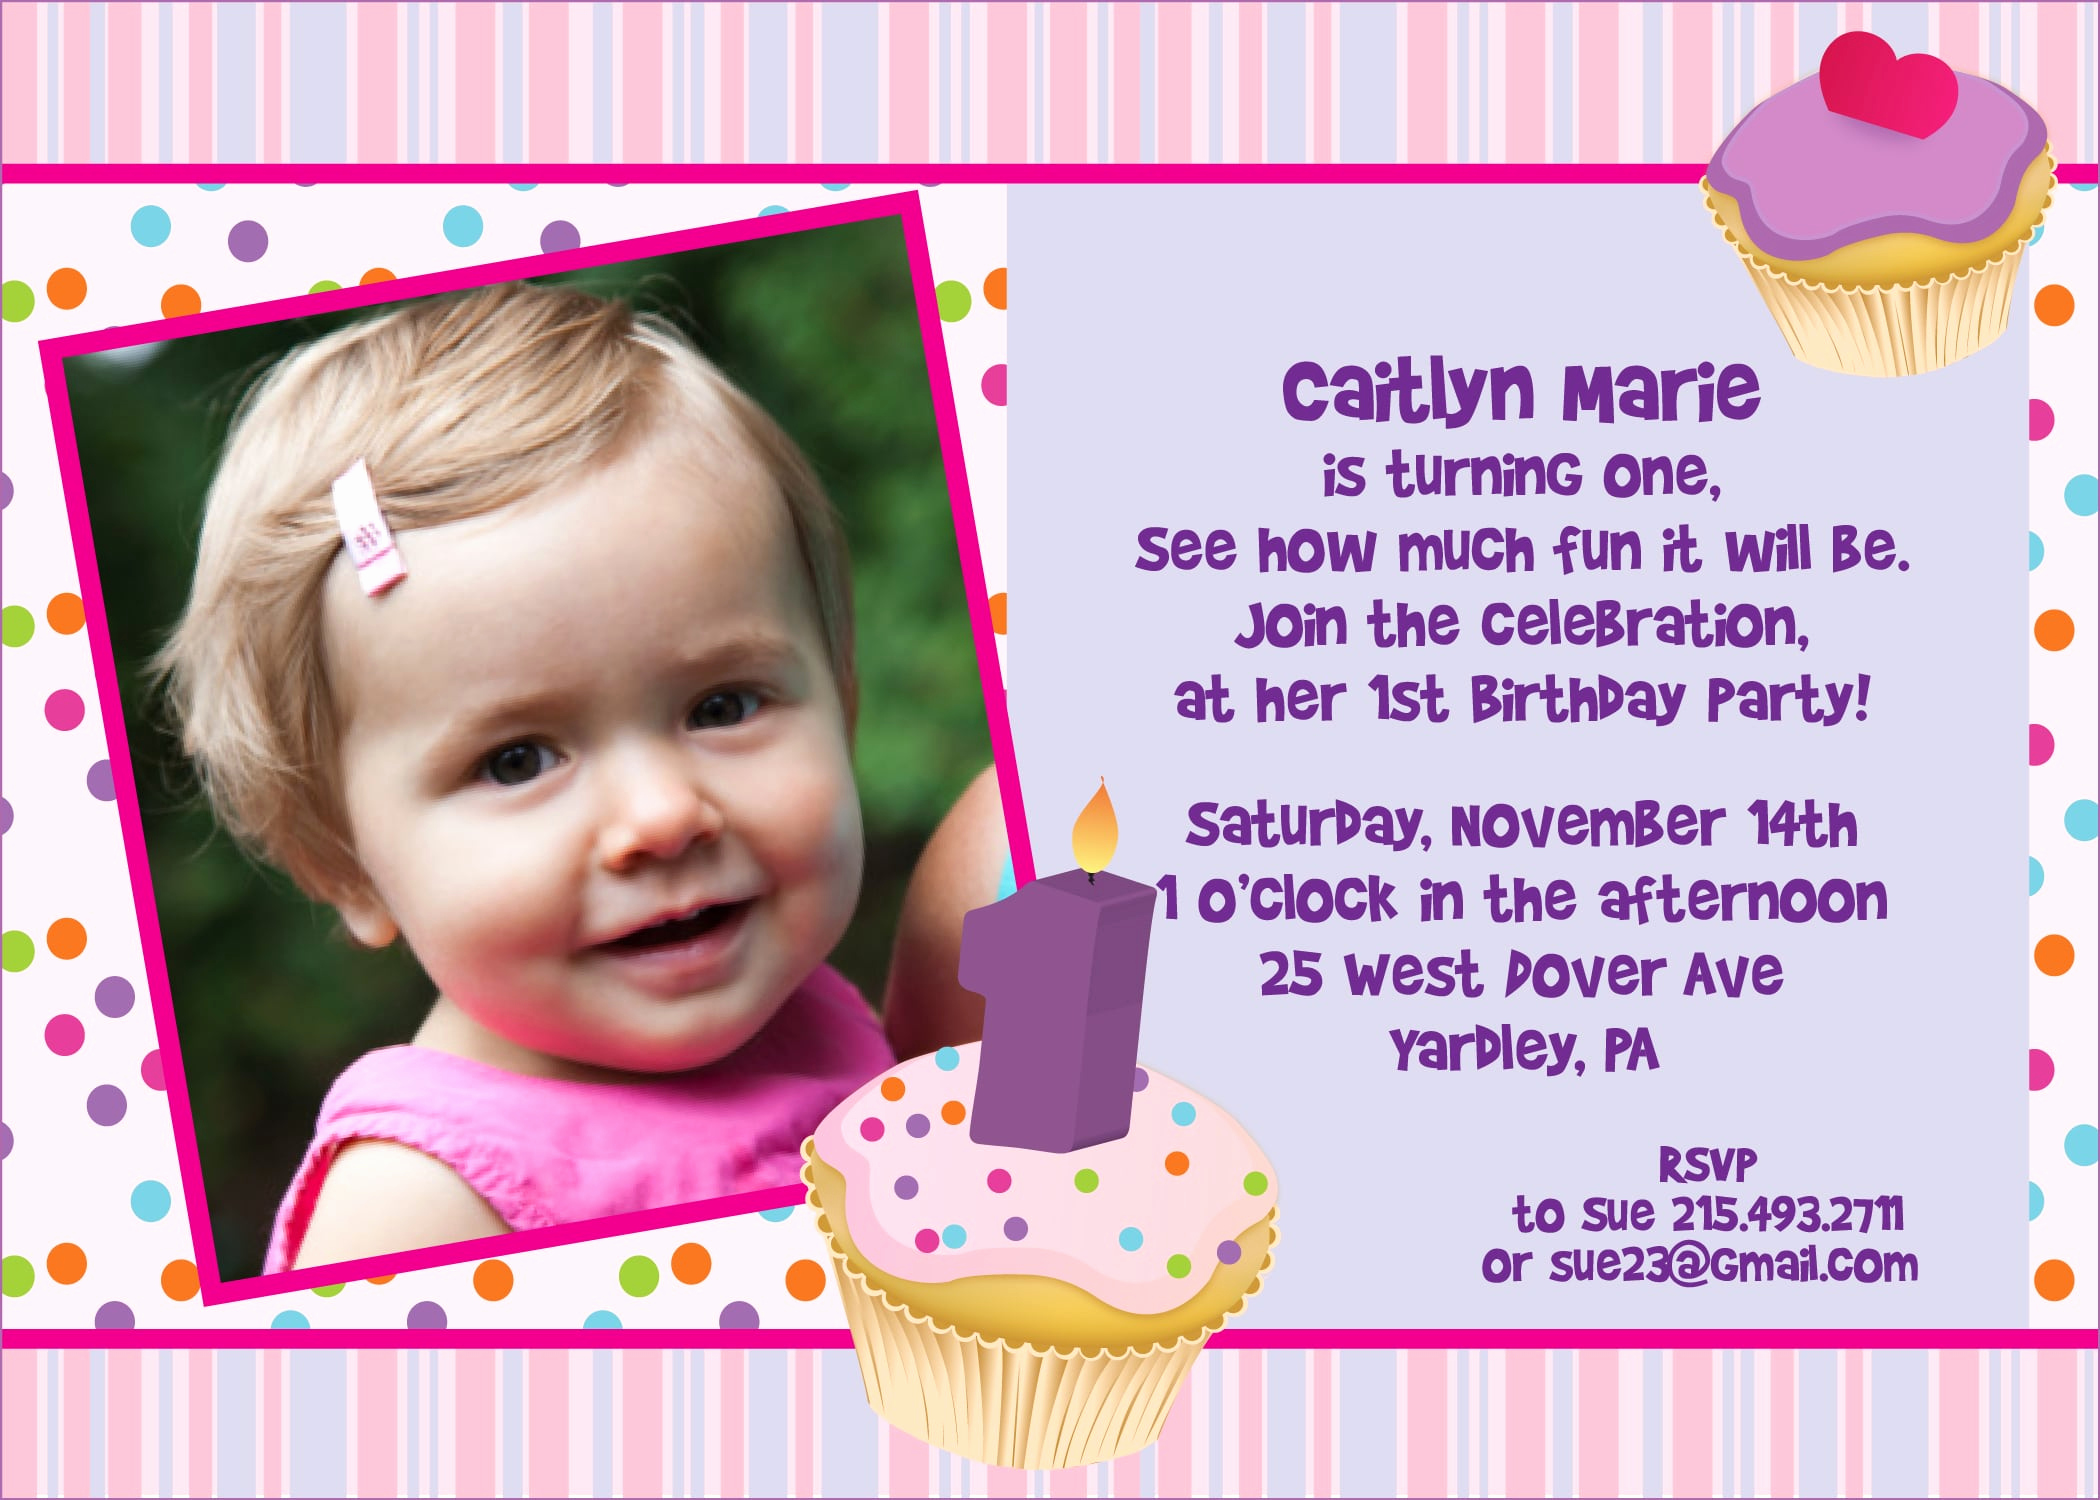 1st Birthday Invitation Message Awesome 1st Birthday Party Invitations Wording